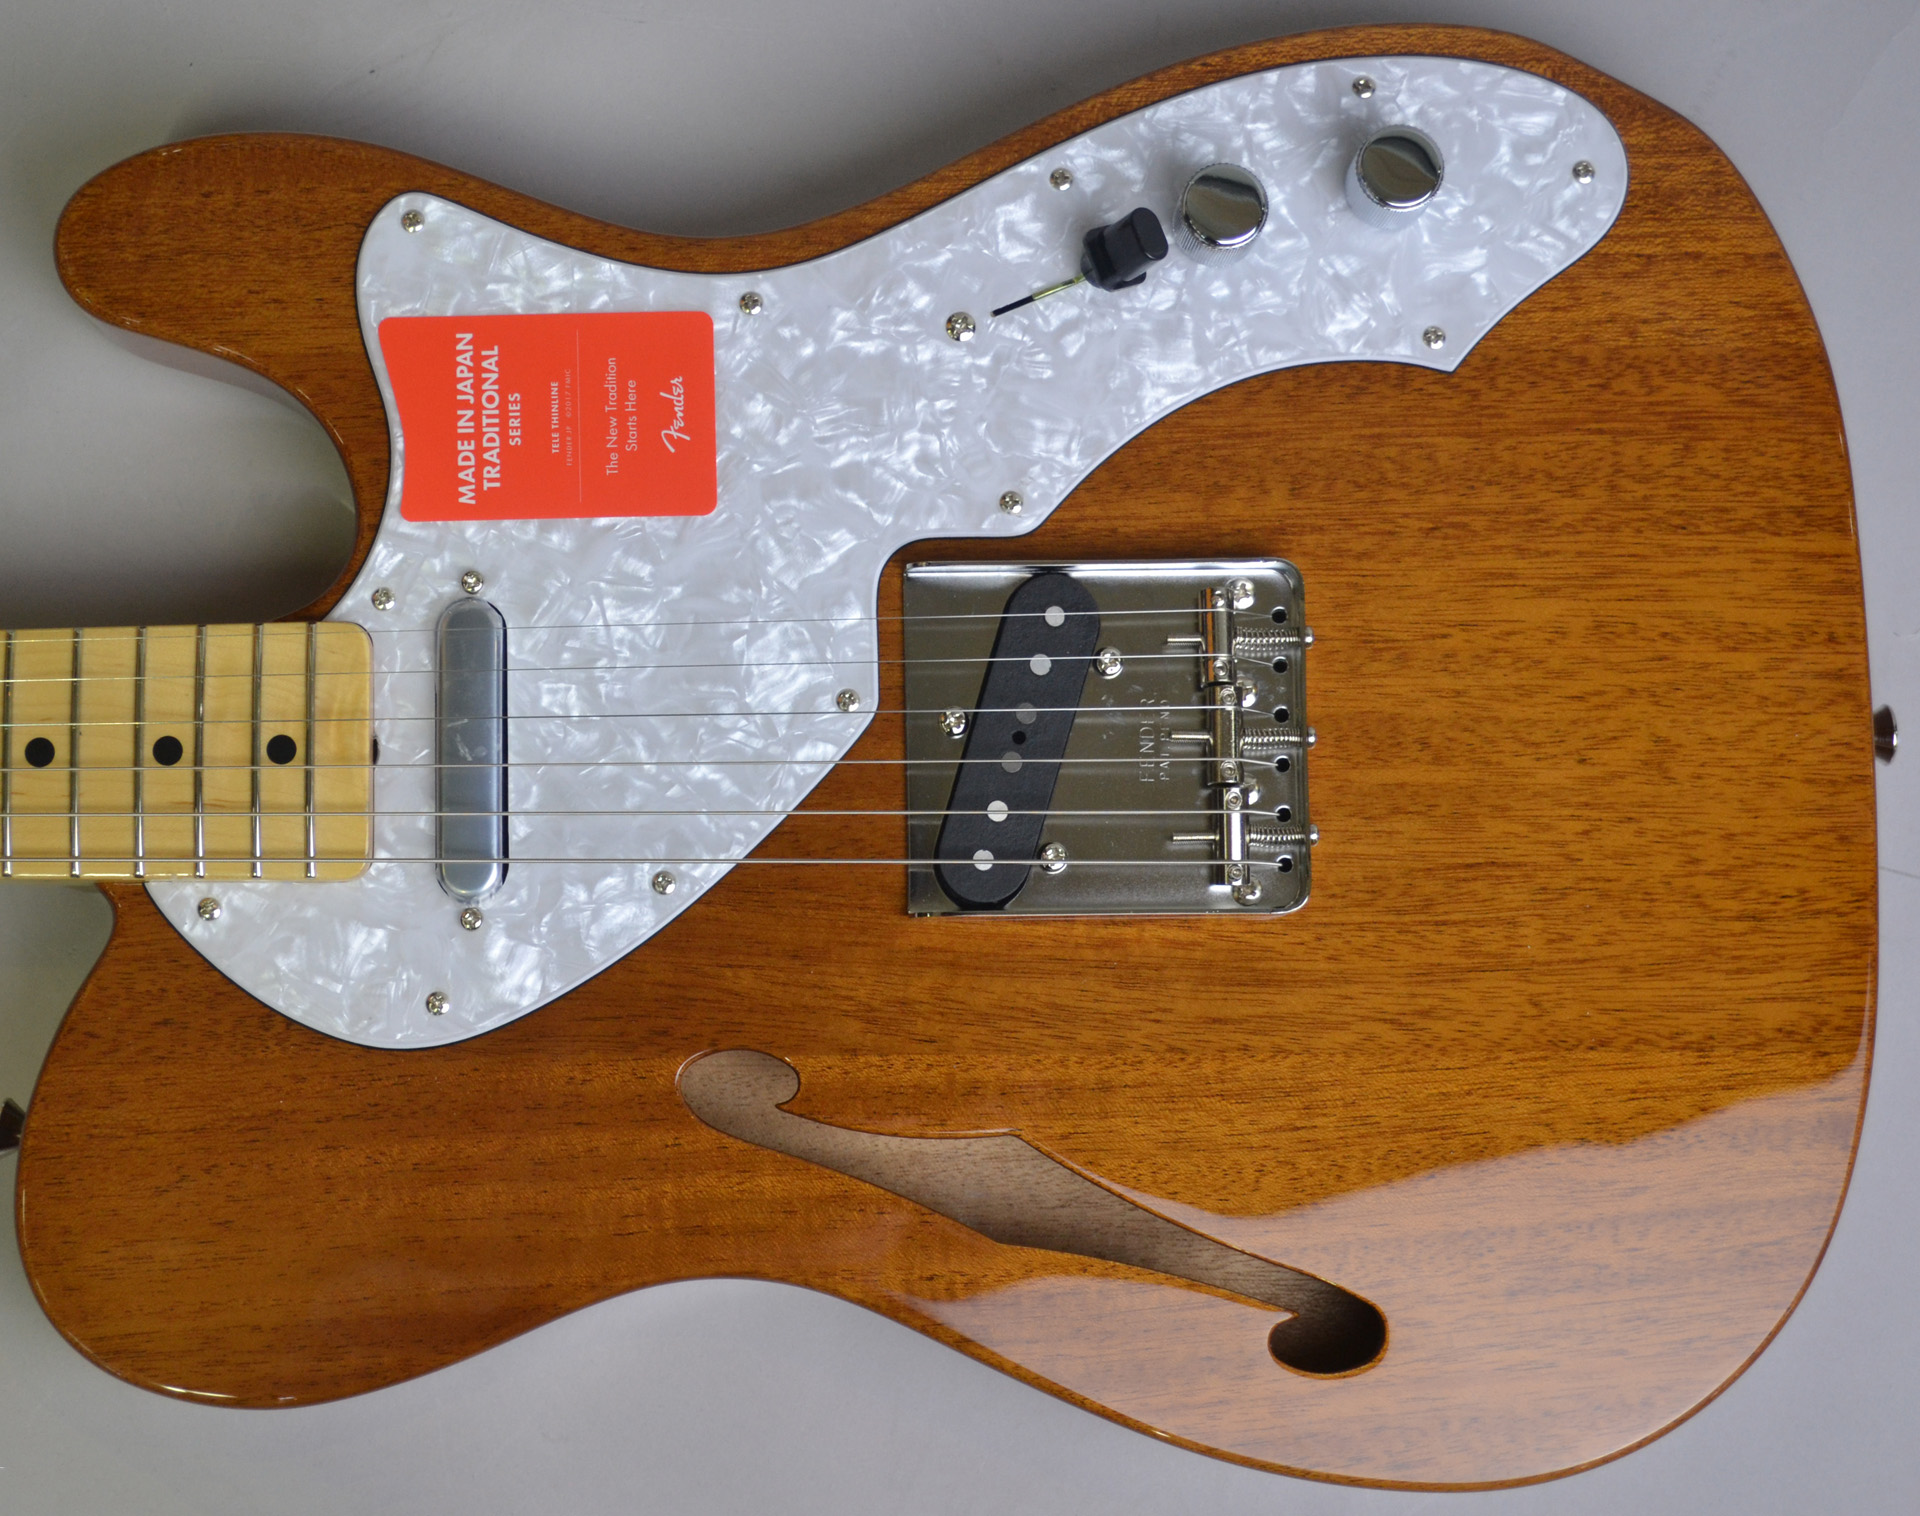 Made in Japan Traditional 69 Telecaster Thinline NAT シンラインのヘッド裏-アップ画像